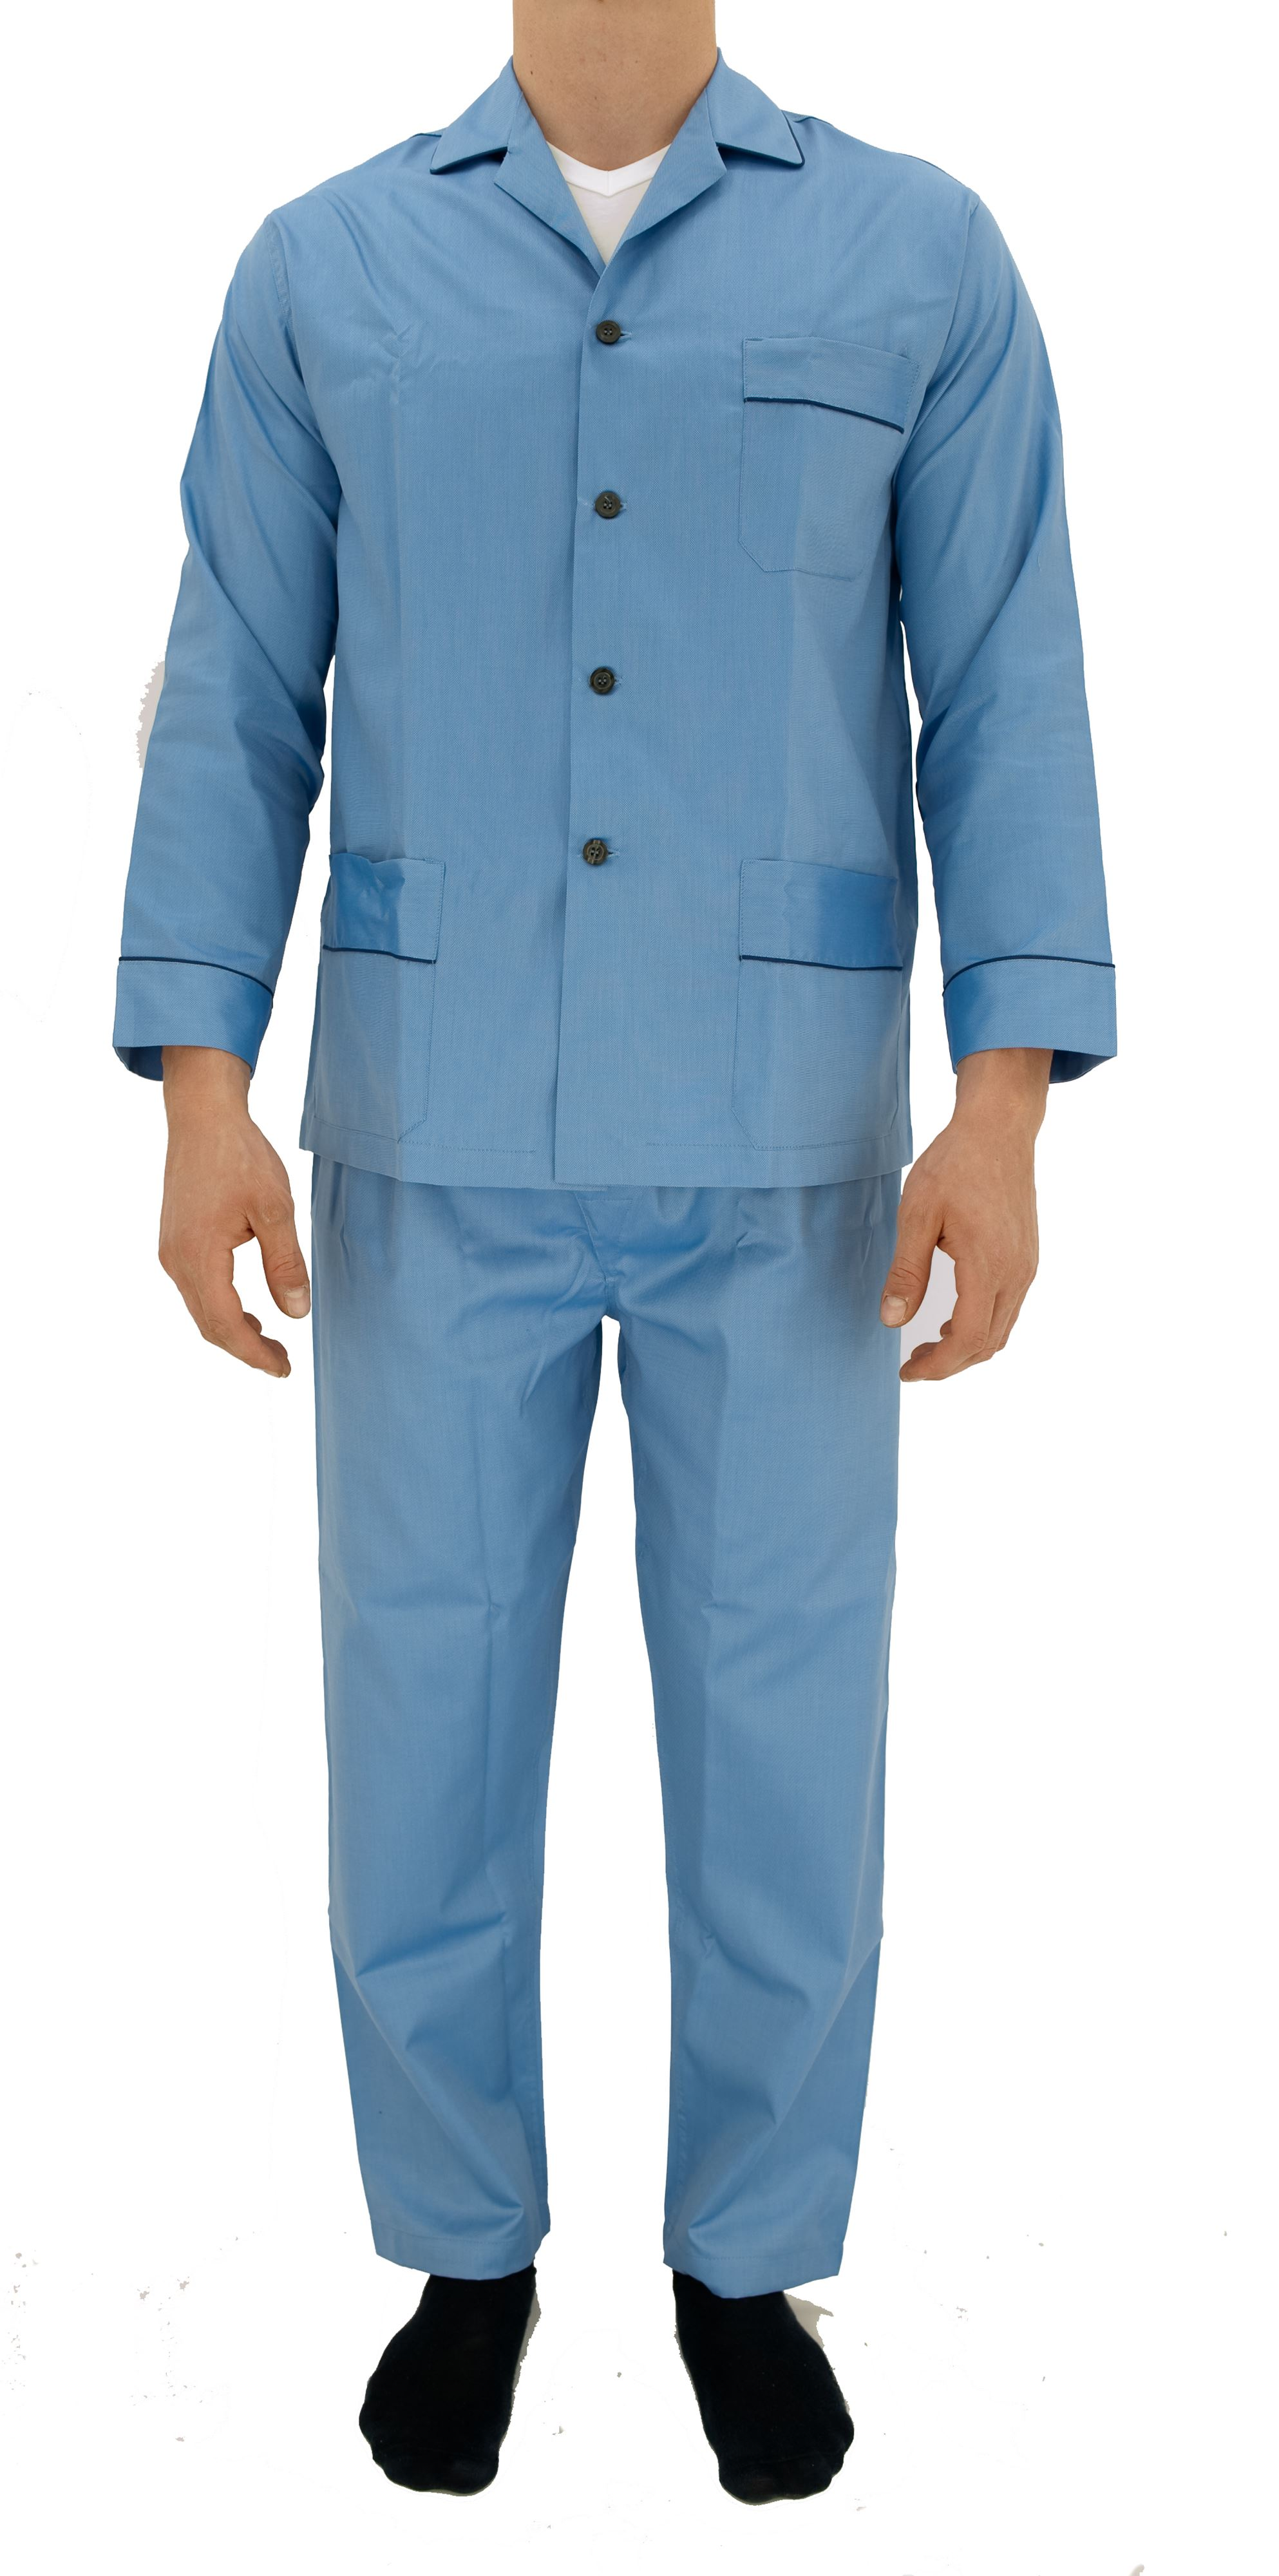 Picture of Men's Pajamas with buttons